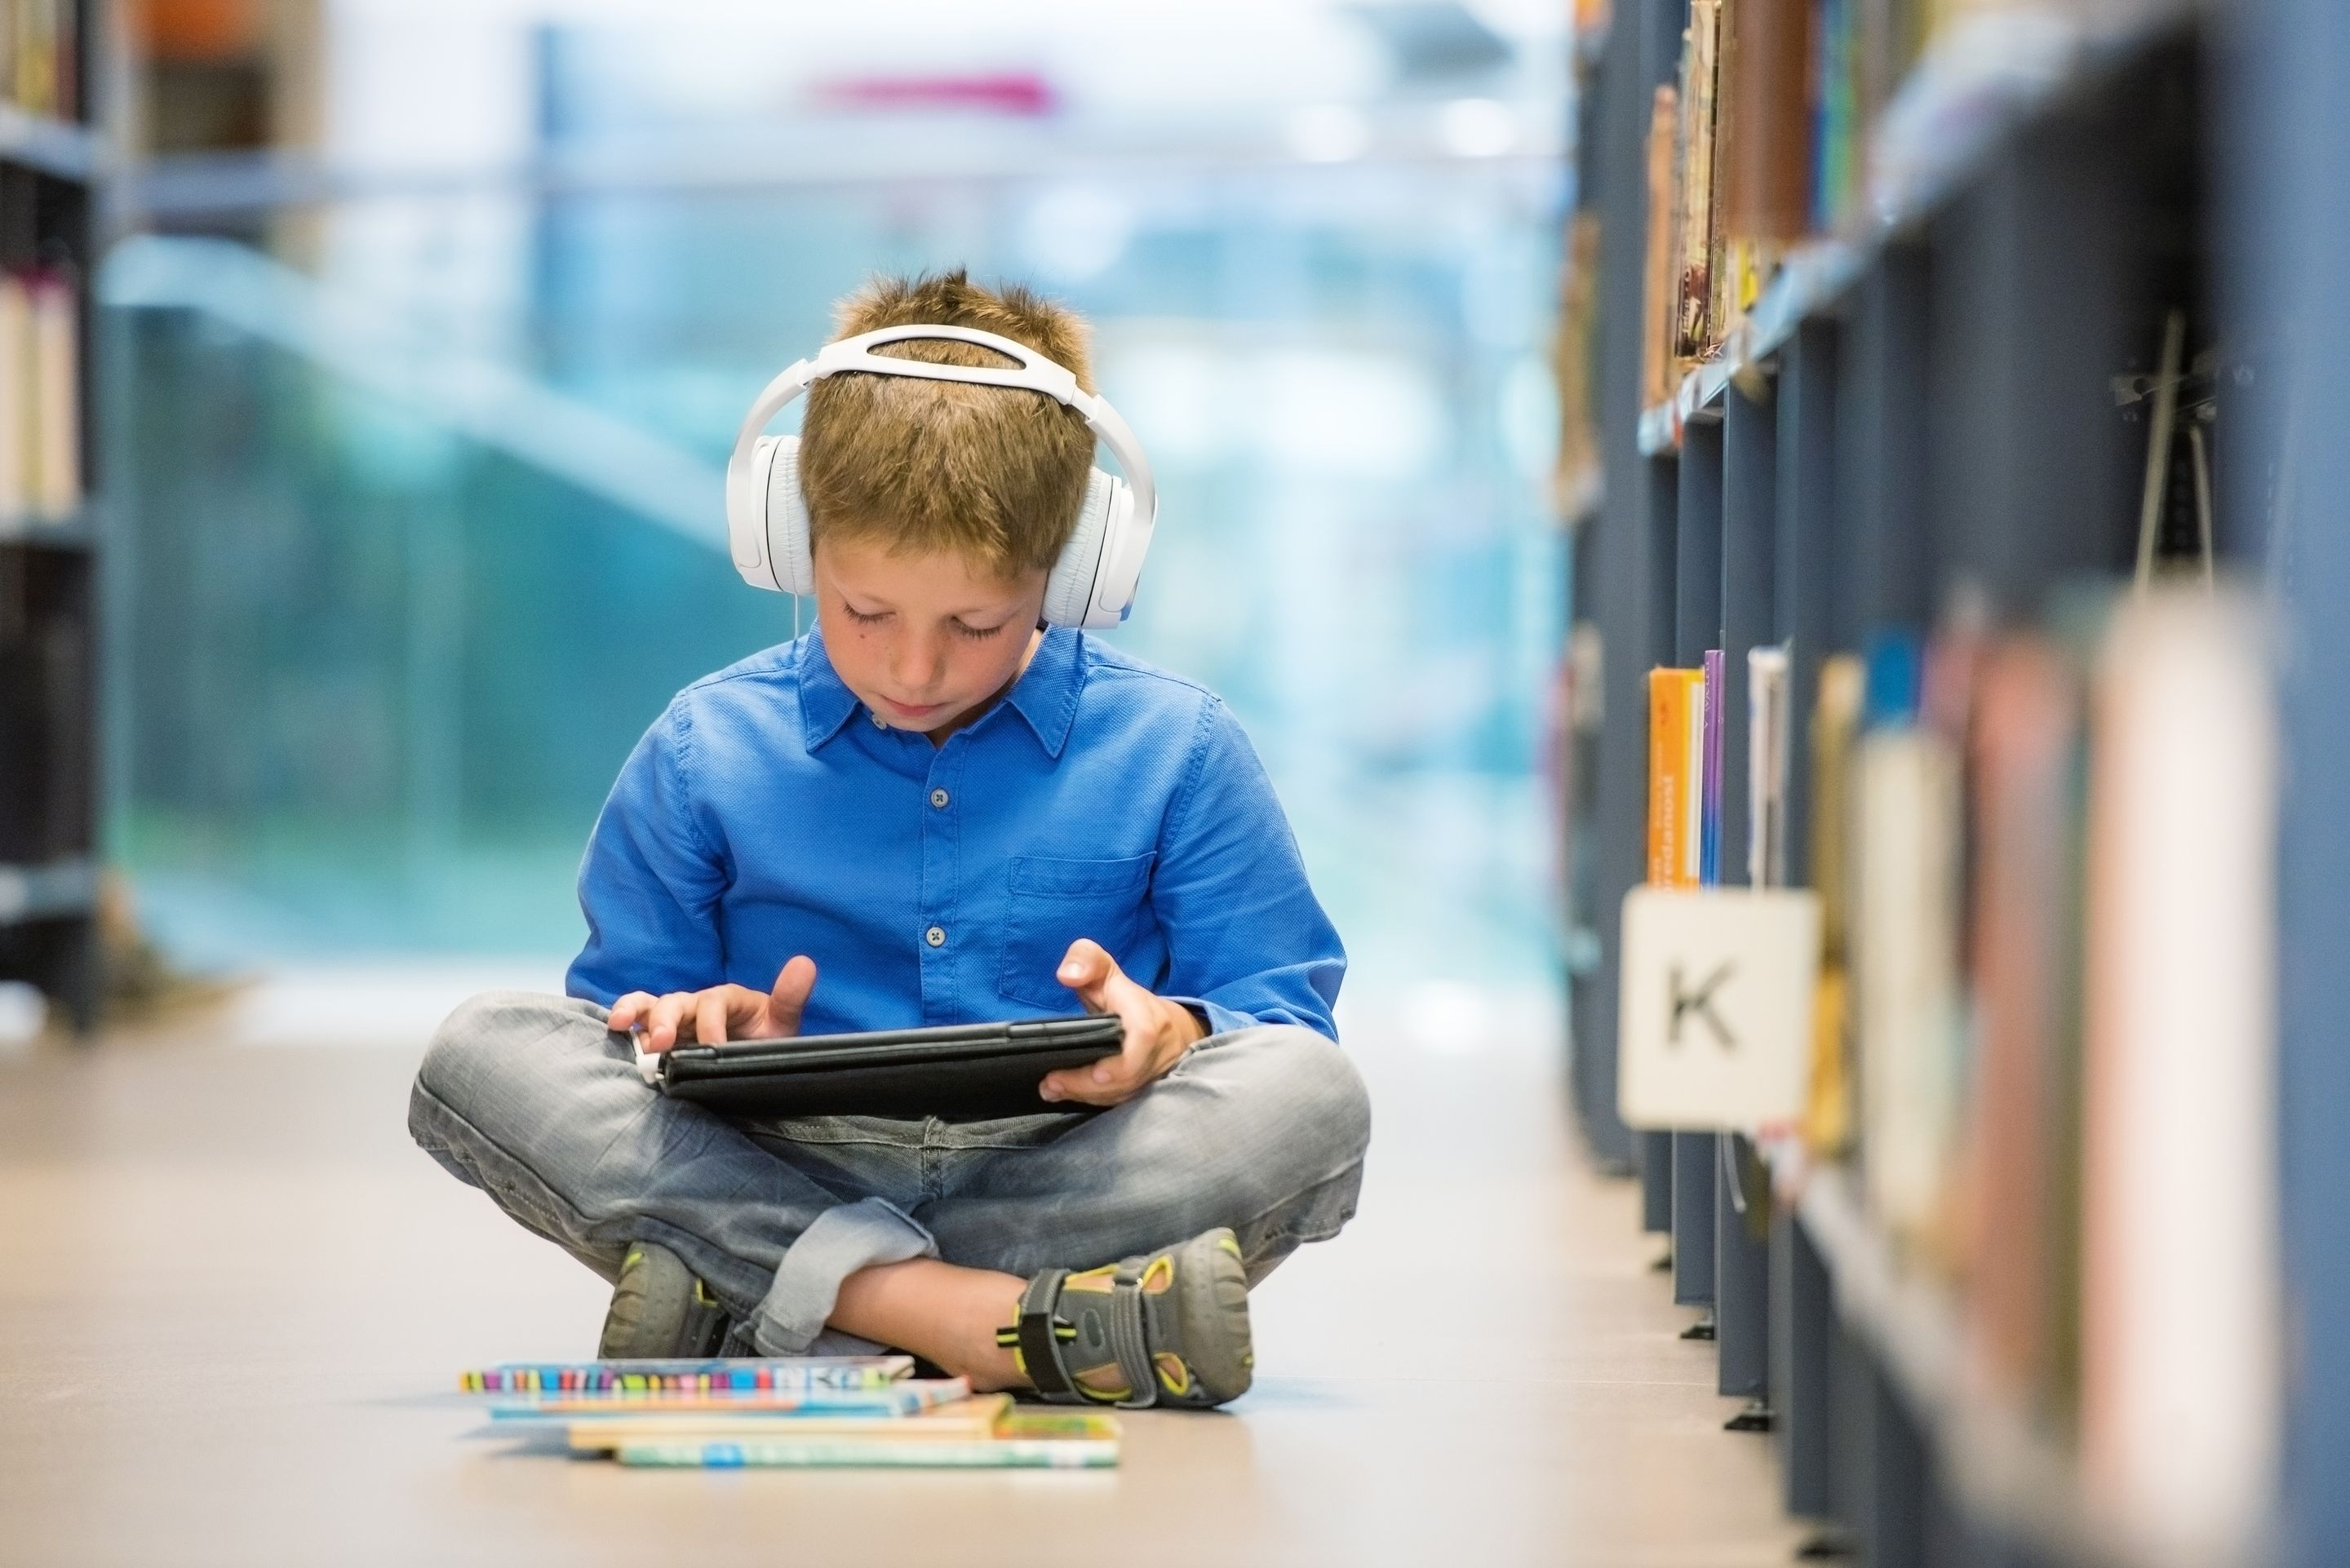 Young Boy sitting on floor in library looking at a tablet